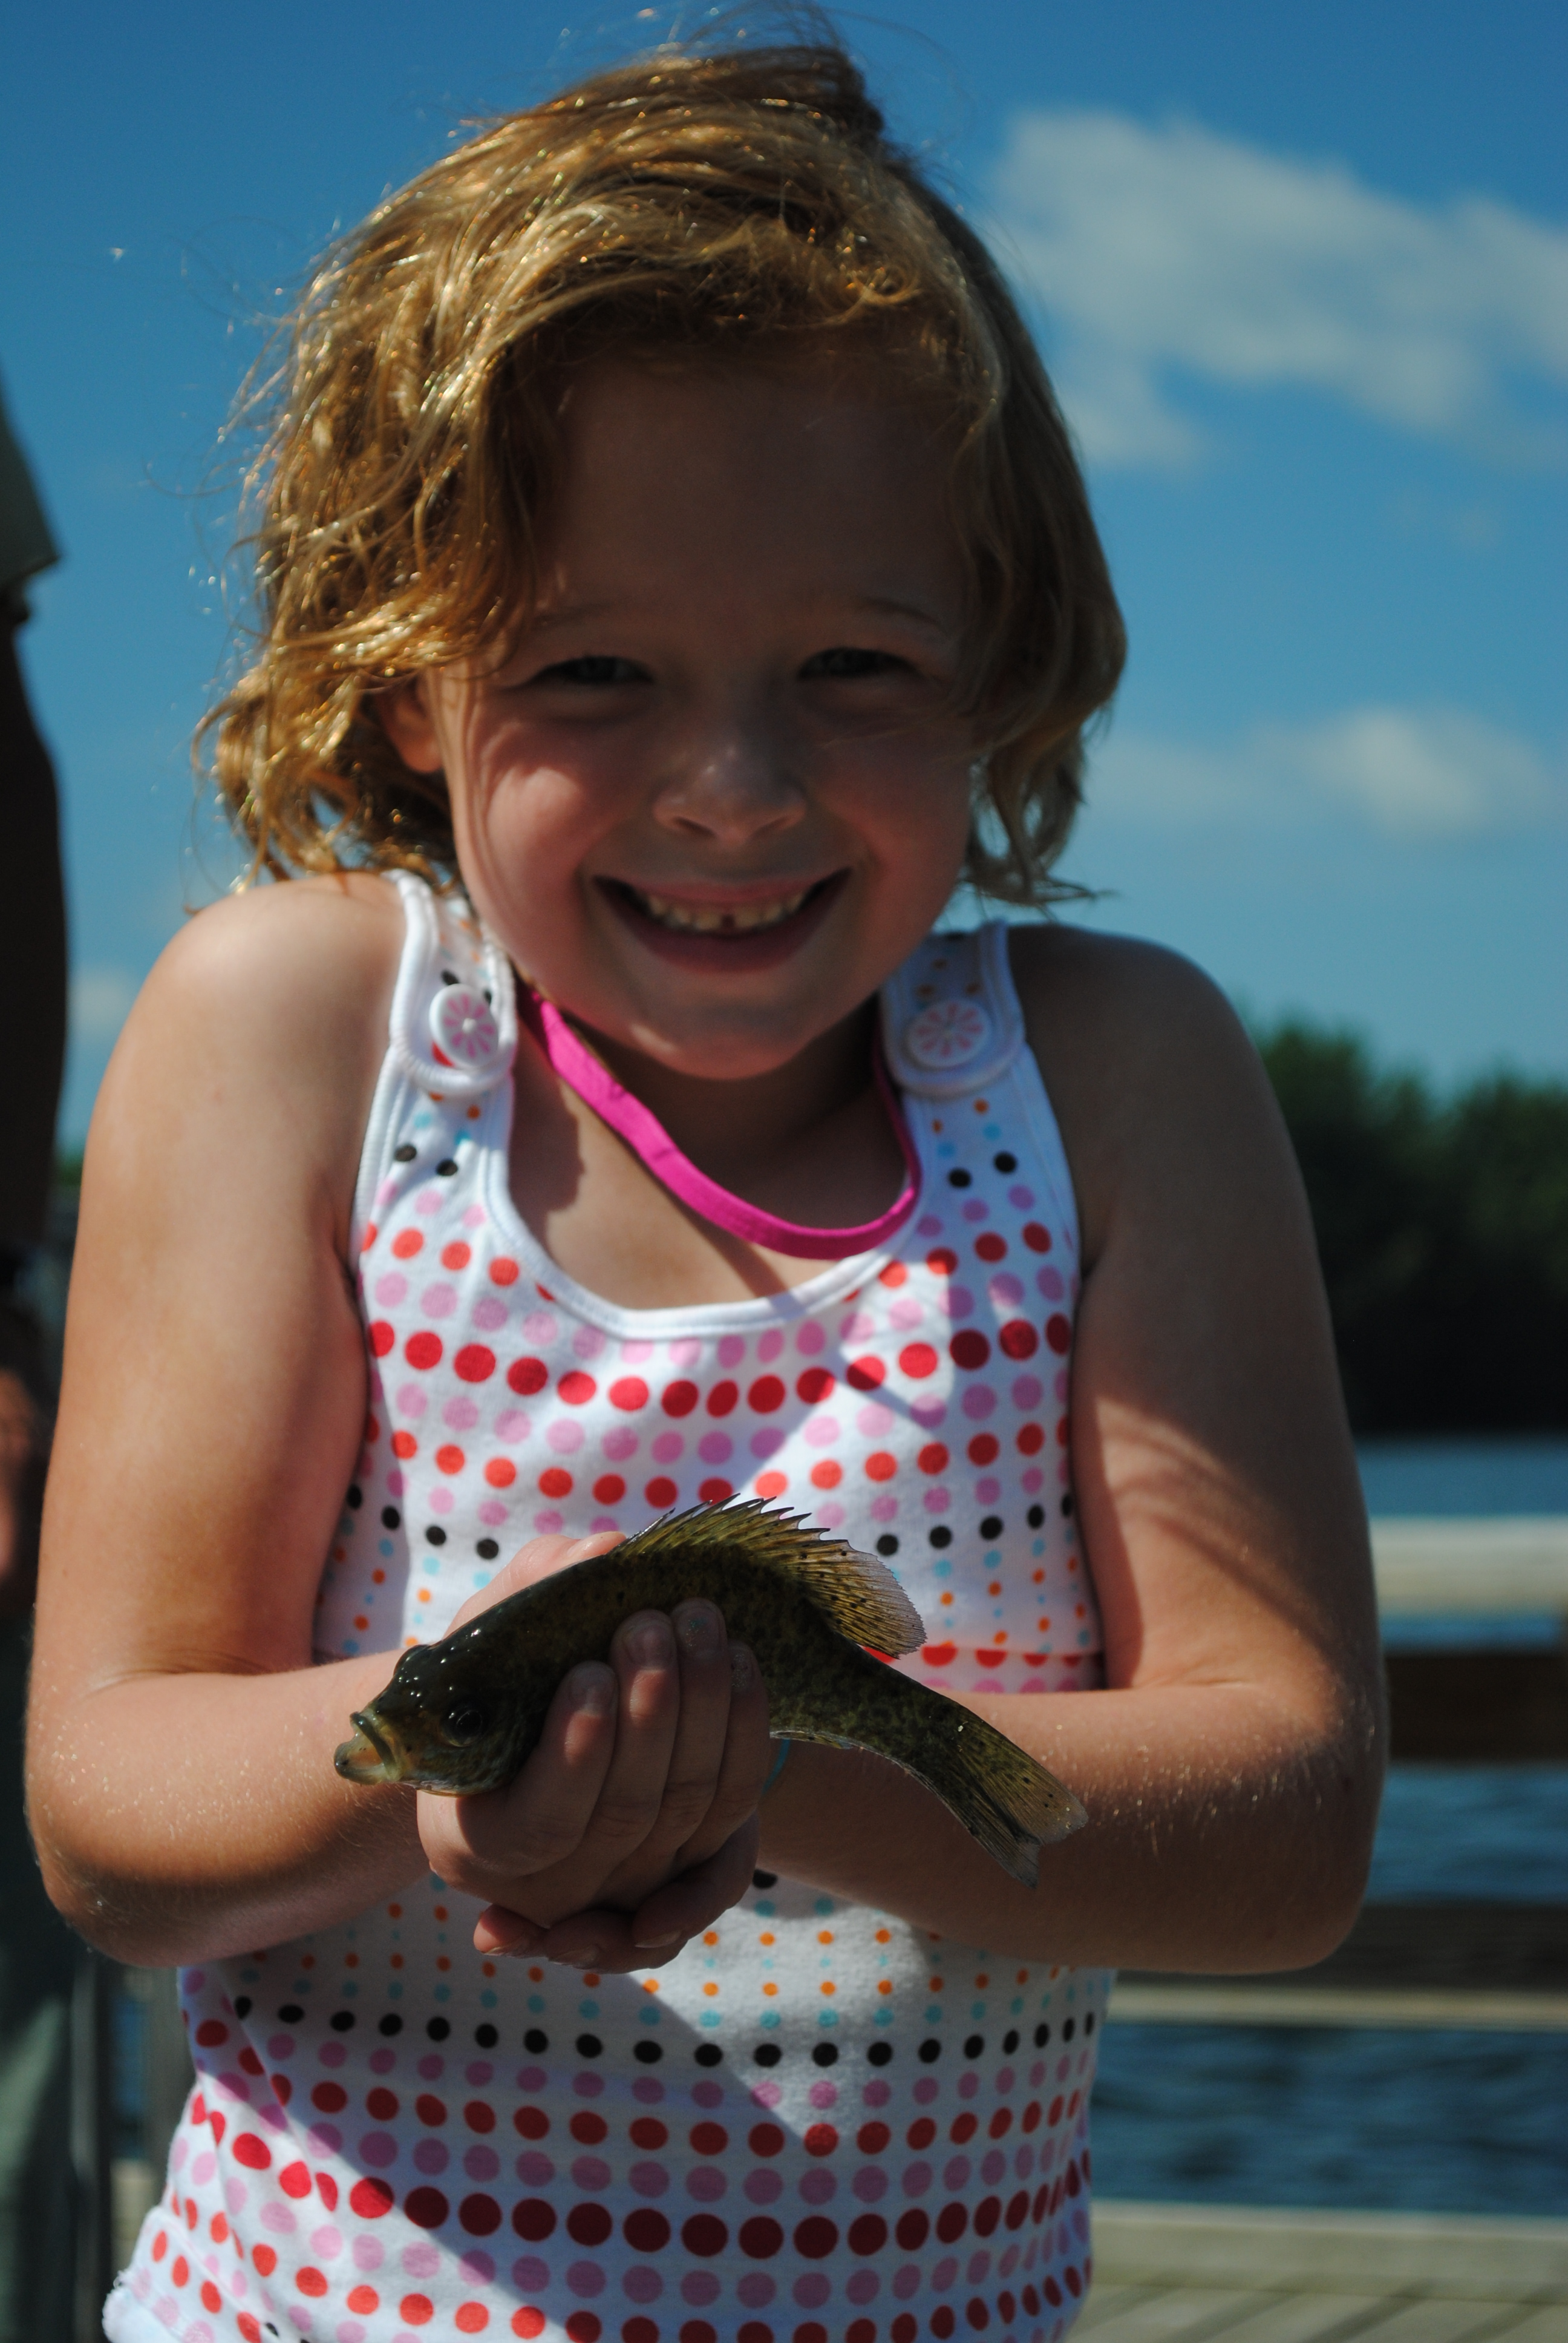 Girl smiling, holding up small fish she has just caught.